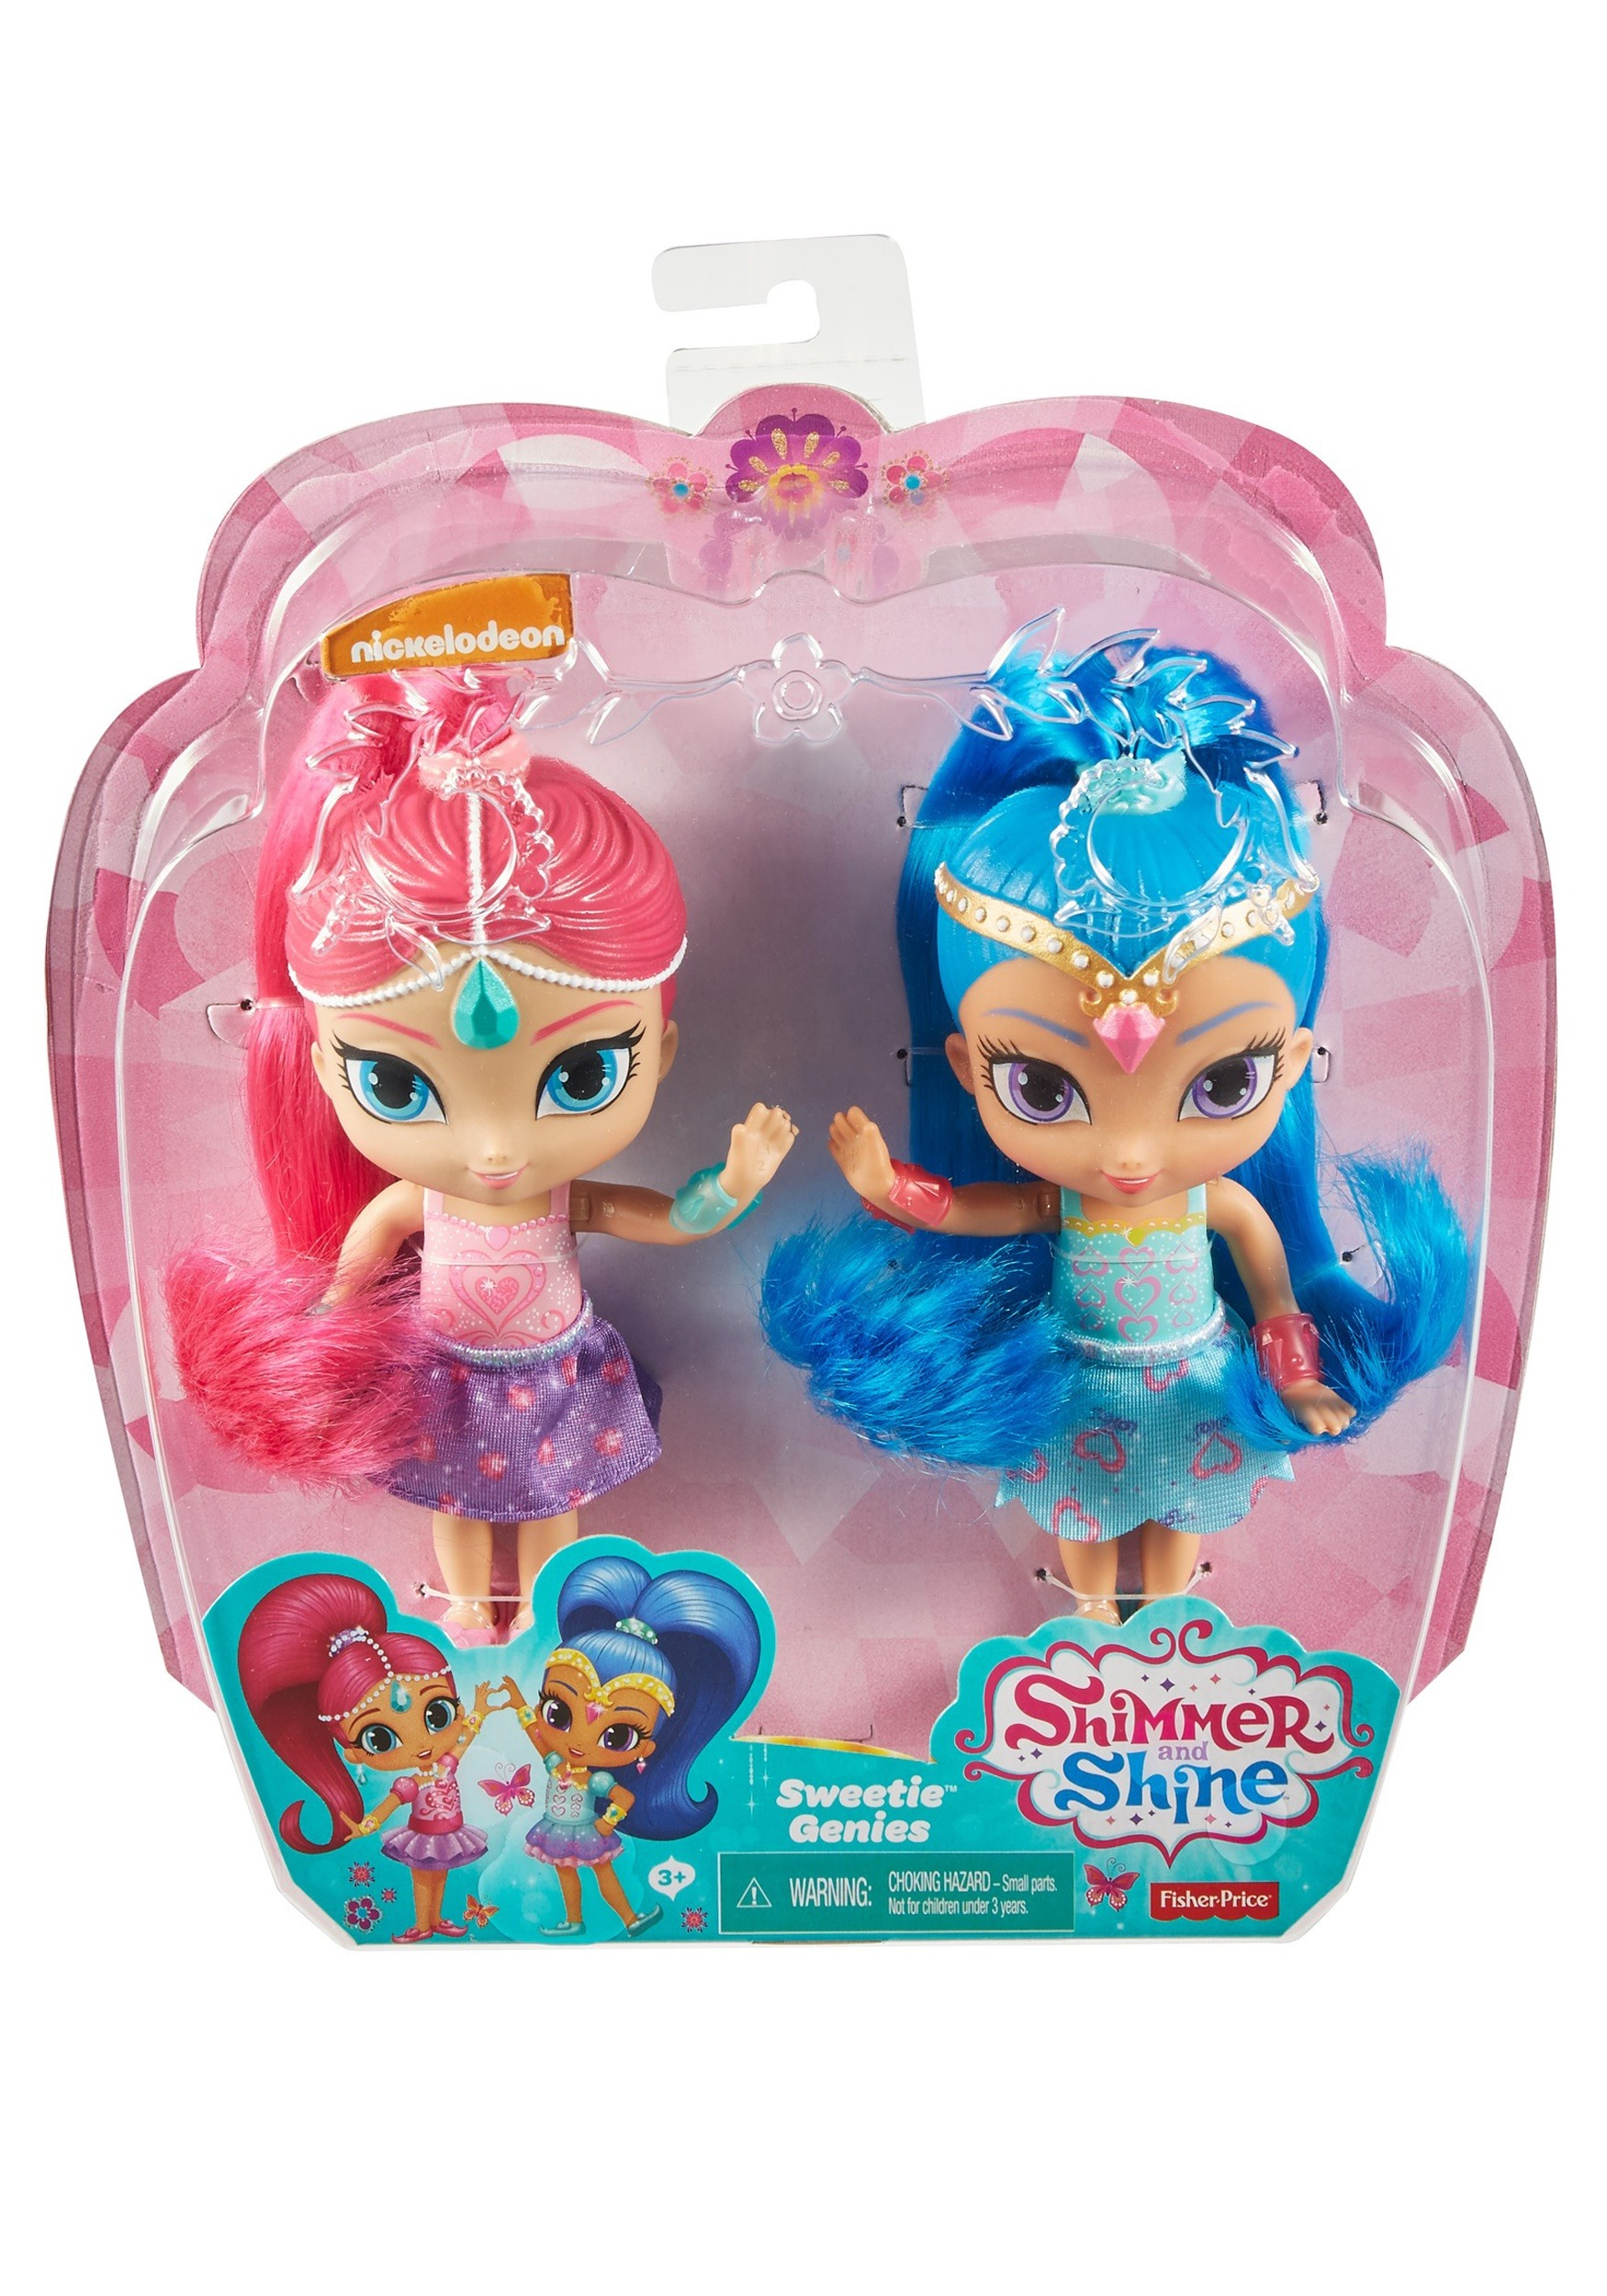 003ef28deb Set of 2 Shimmer   Shine Sweetie Genies